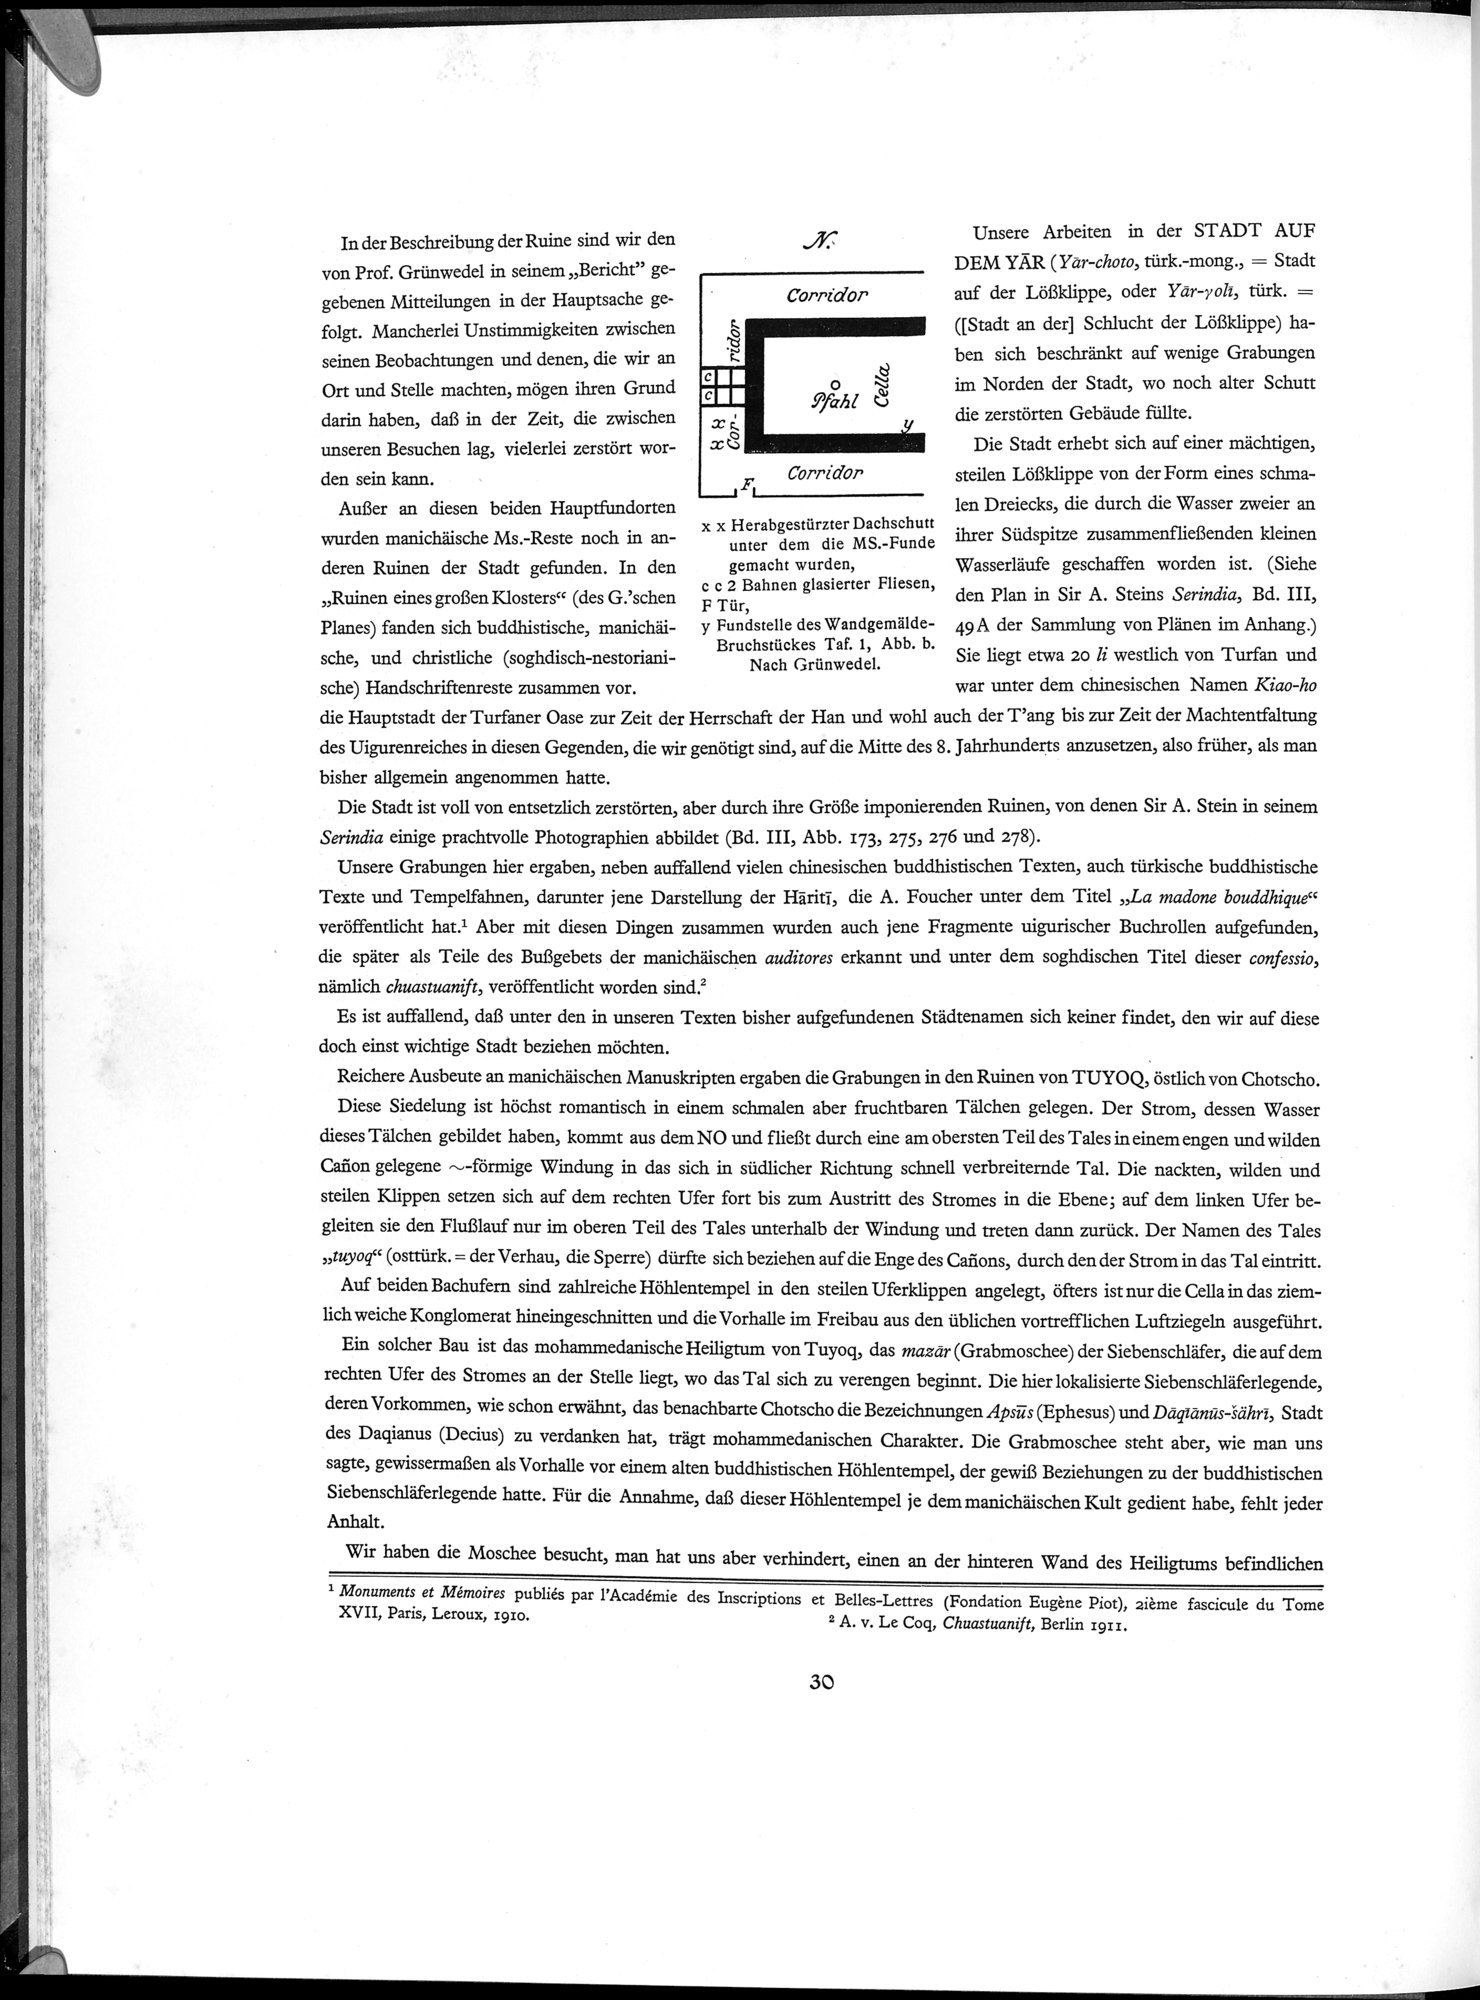 Die Buddhistische Spätantike in Mittelasien : vol.2 / Page 36 (Grayscale High Resolution Image)